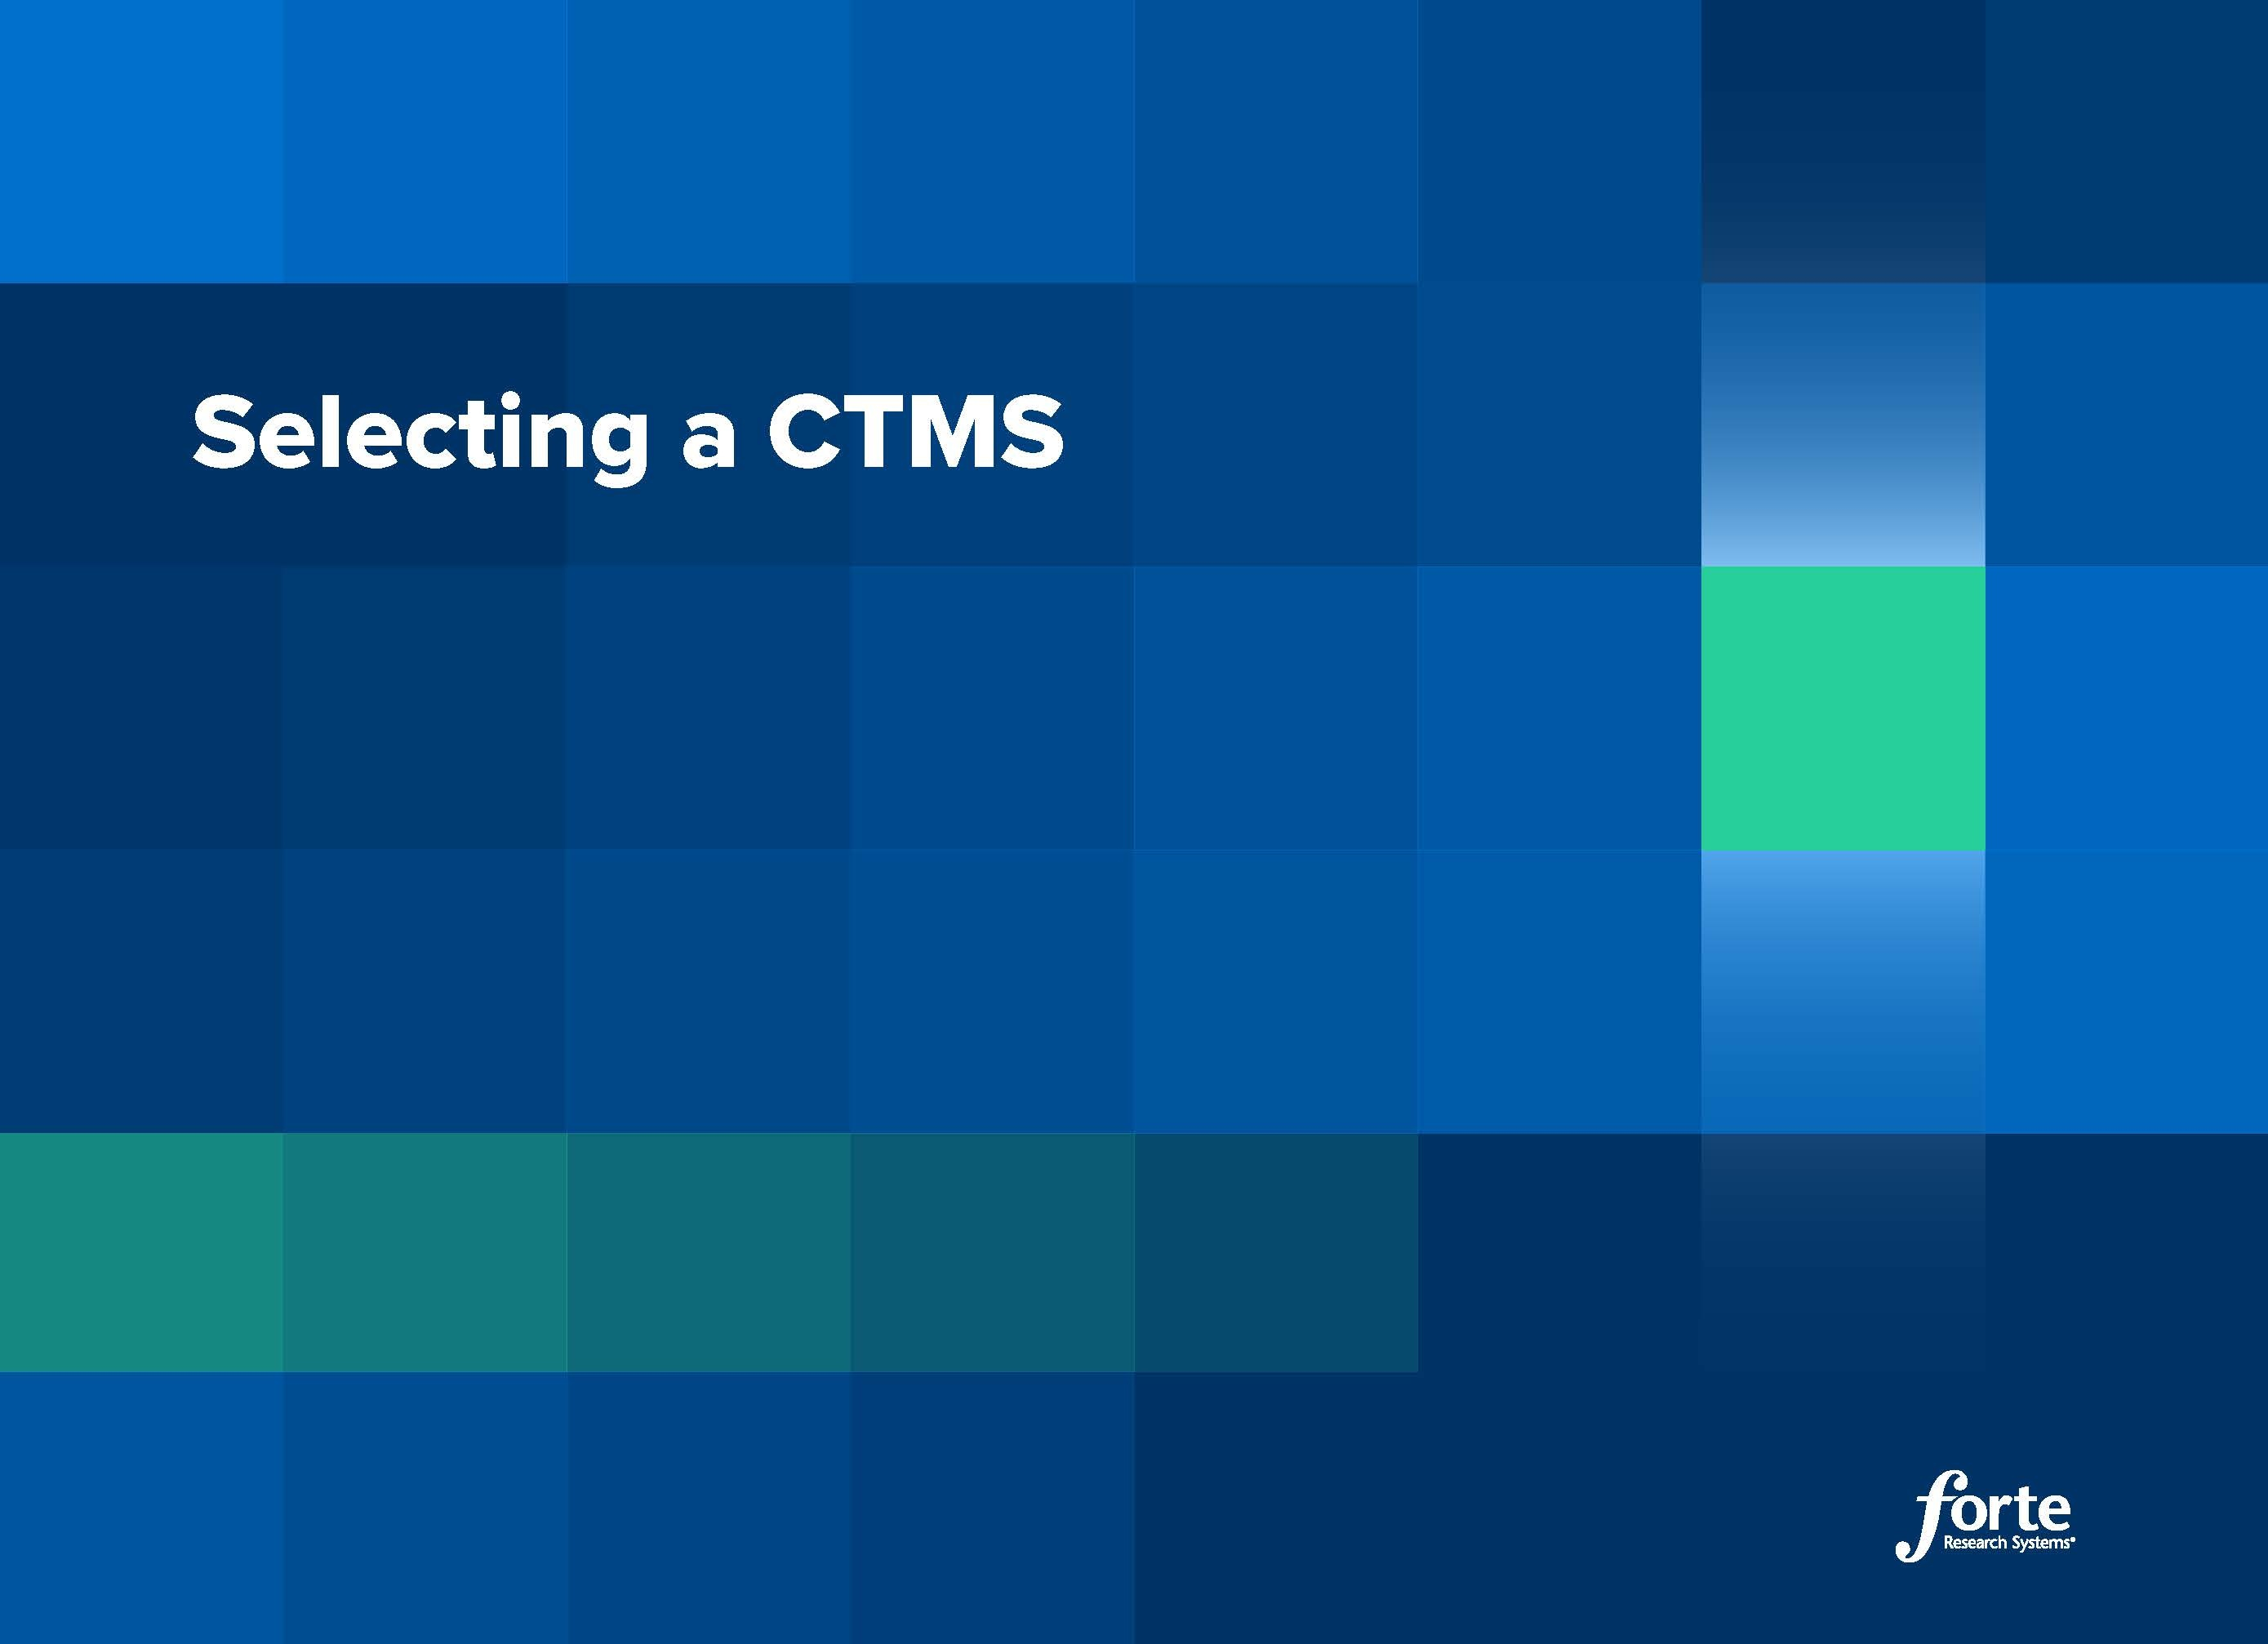 eBook: Selecting a CTMS